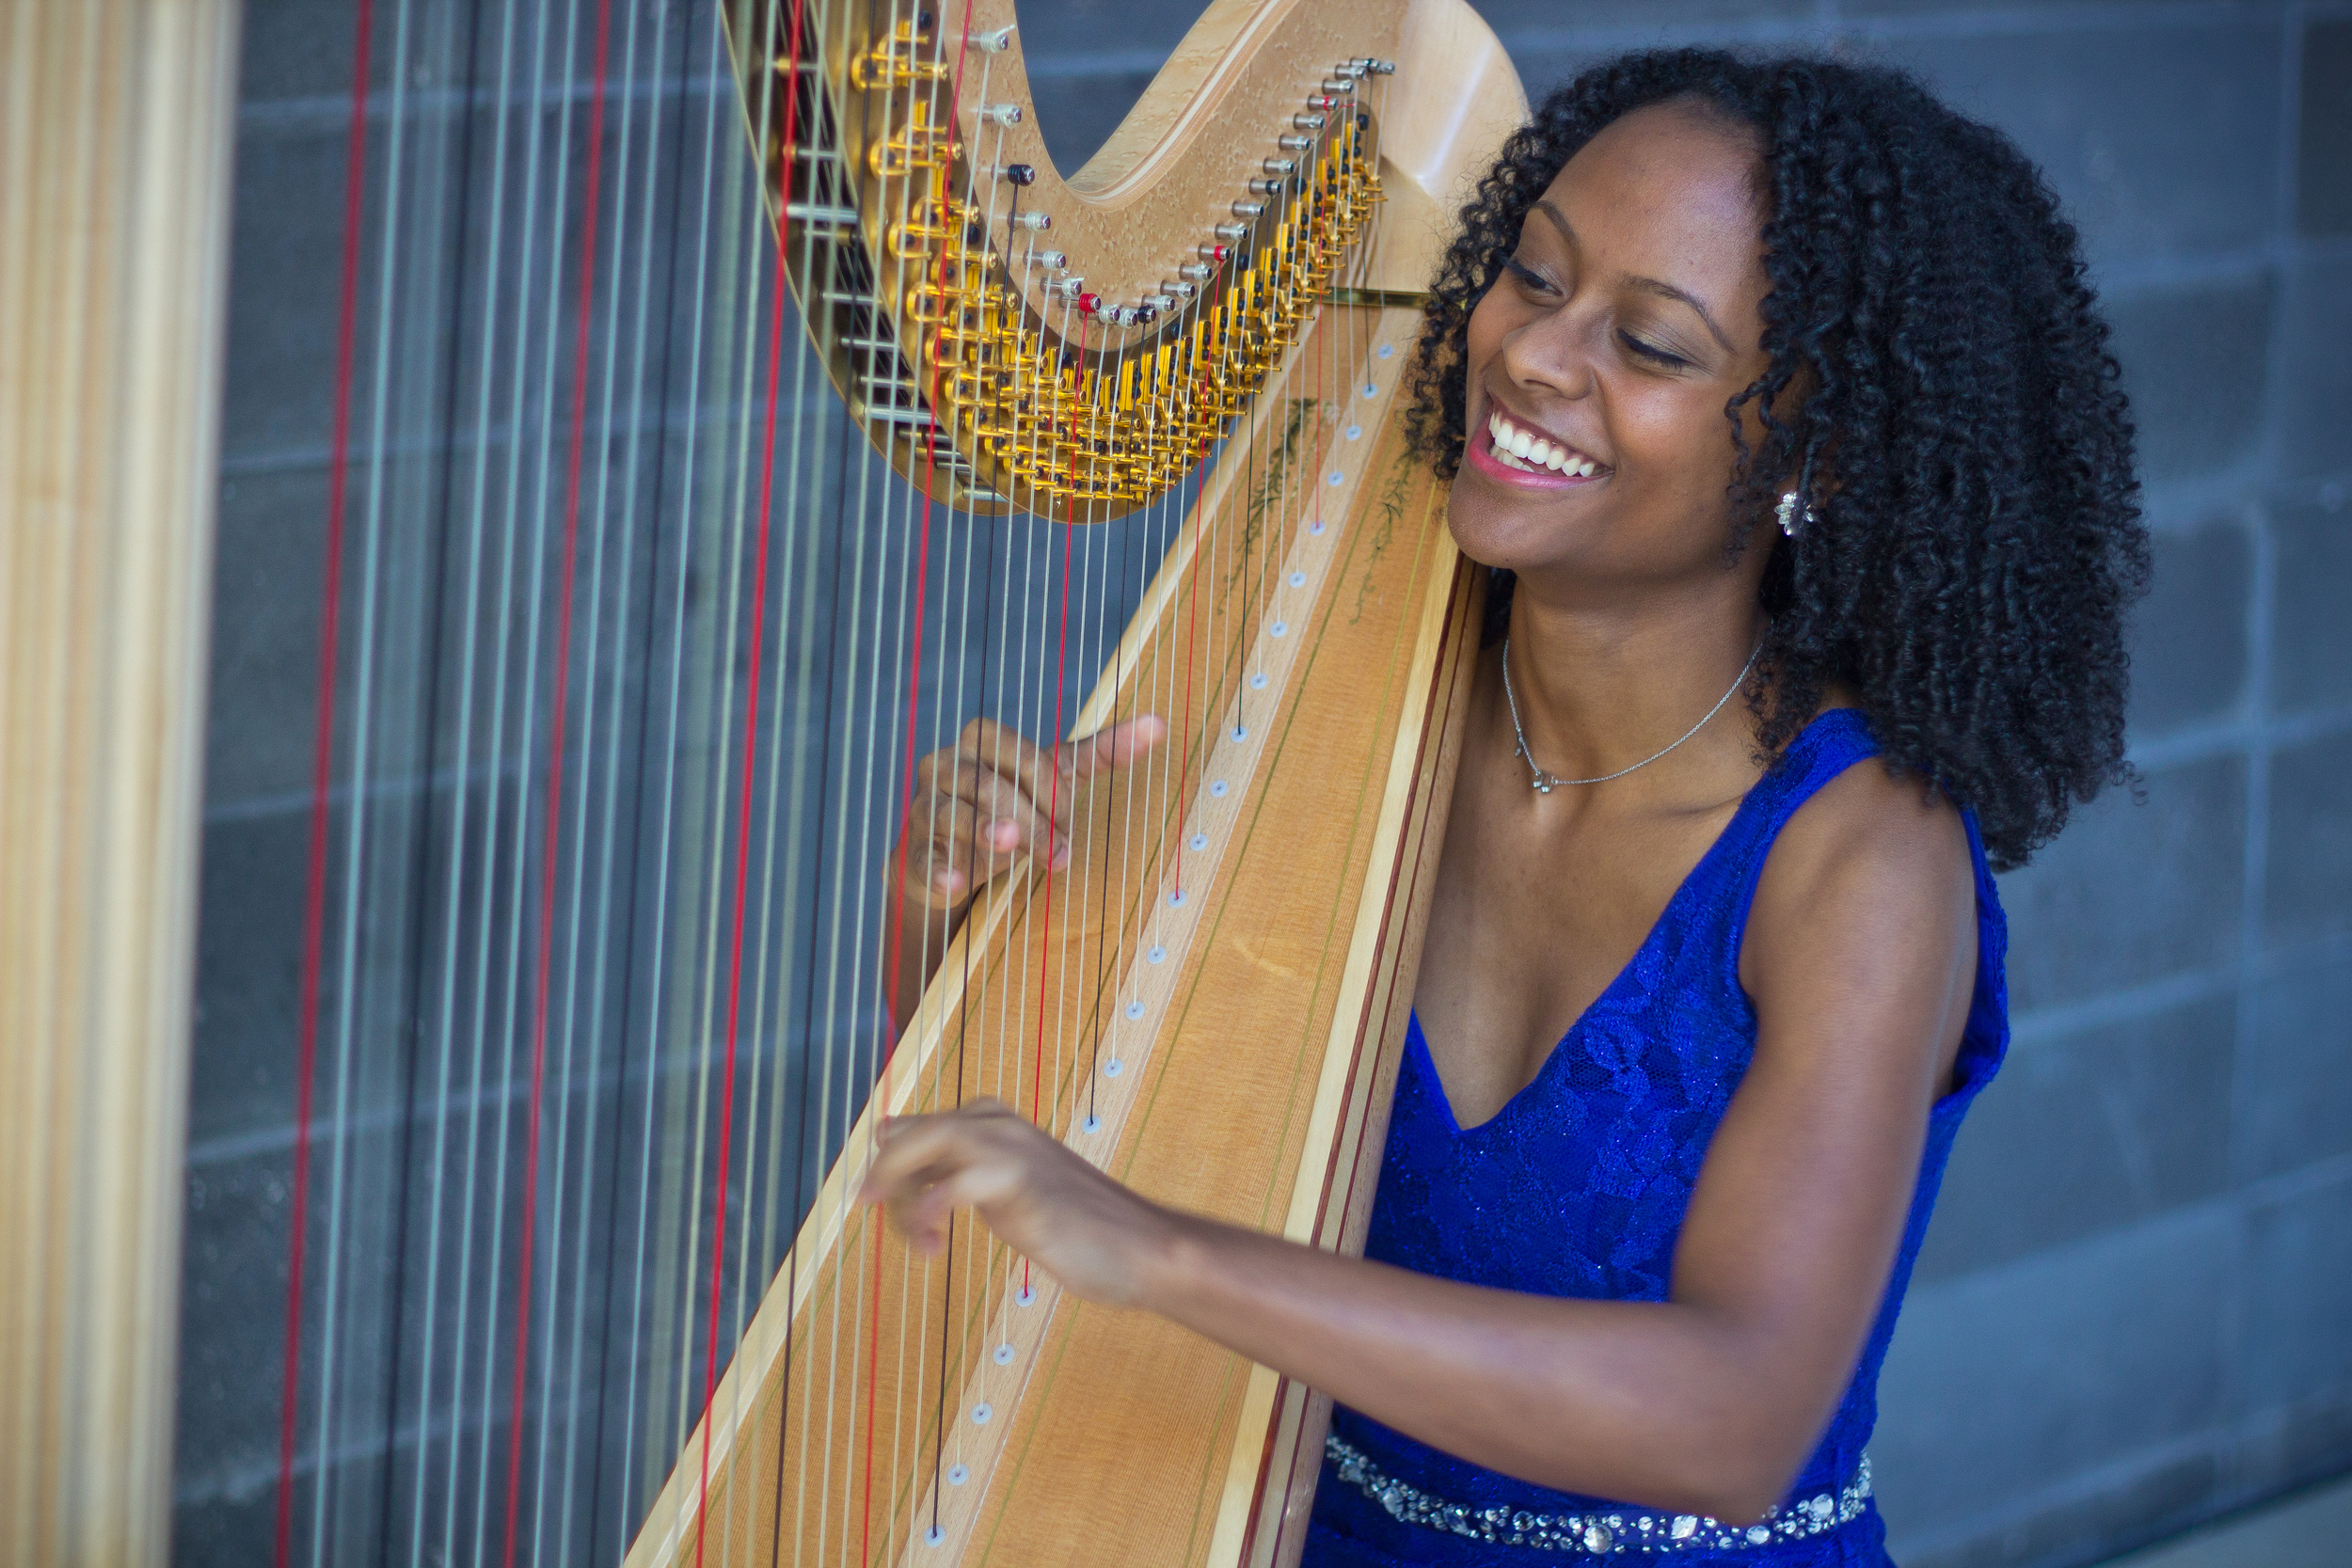 Angelica Hairston, a native of Atlanta, Georgia, is currently pursuing a Master of Music Industry Leadership at Northeastern University as a 2015 recipient of the Dr. Martin Luther King, Jr., Graduate Fellowship. Angelica studied with world renowned harpist Judy Loman at The Glenn Gould School of The Royal Conservatory of Music in Toronto, Ontario, where she received a Harp Performance Diploma, in addition to a Bachelor of Music from Thompson River University. Angelica was a member of the highly-selective Atlanta Symphony Orchestra's Talent Development Program for six years (2006-2011), where she was a student of ASO principal harpist Elisabeth Remy Johnson. Angelica has attended summer music programs at the National Music Festival, Boston University Tanglewood Institute, Saratoga Harp Colony, International Harp Academy of the Pacific in Powell River B.C. and the Judith Liber Harp Masterclass in Lake Como, Italy.  She has performed concertos with the   Atlanta Symphony Orchestra, Nashville Symphony Orchestra, Montgomery Symphony, and the   Daytona Solisti Chamber Orchestra. As a passionate solo and chamber musician, Angelica has a deep interest in performing the works of minority composers for new audiences.